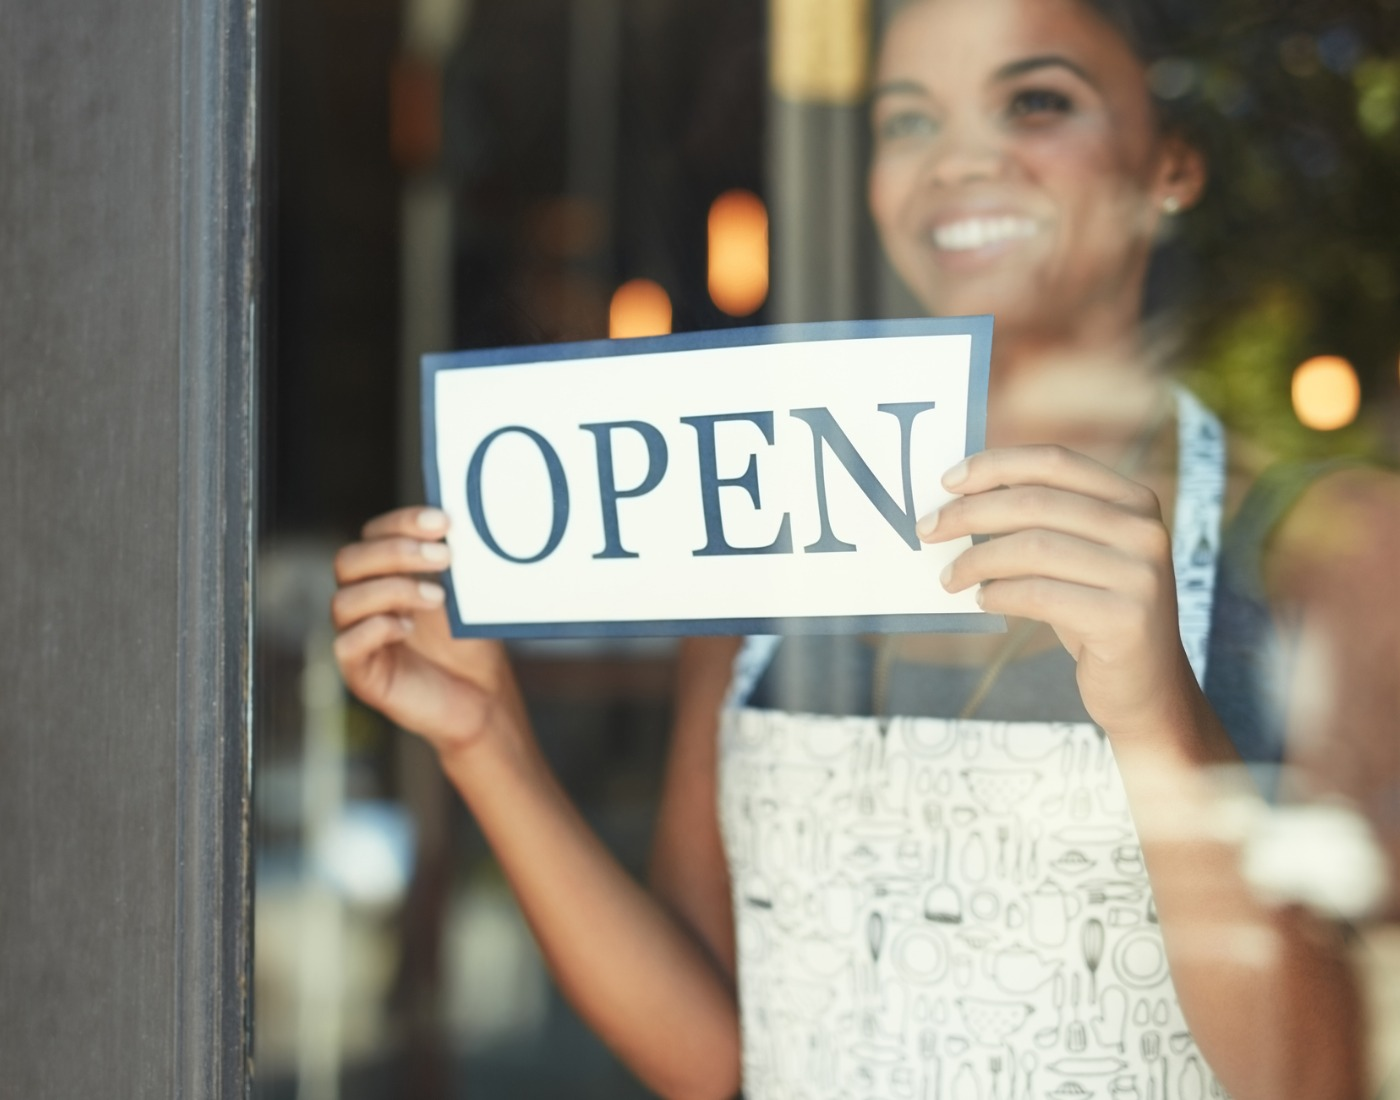 6 ways to support small businesses during COVID-19